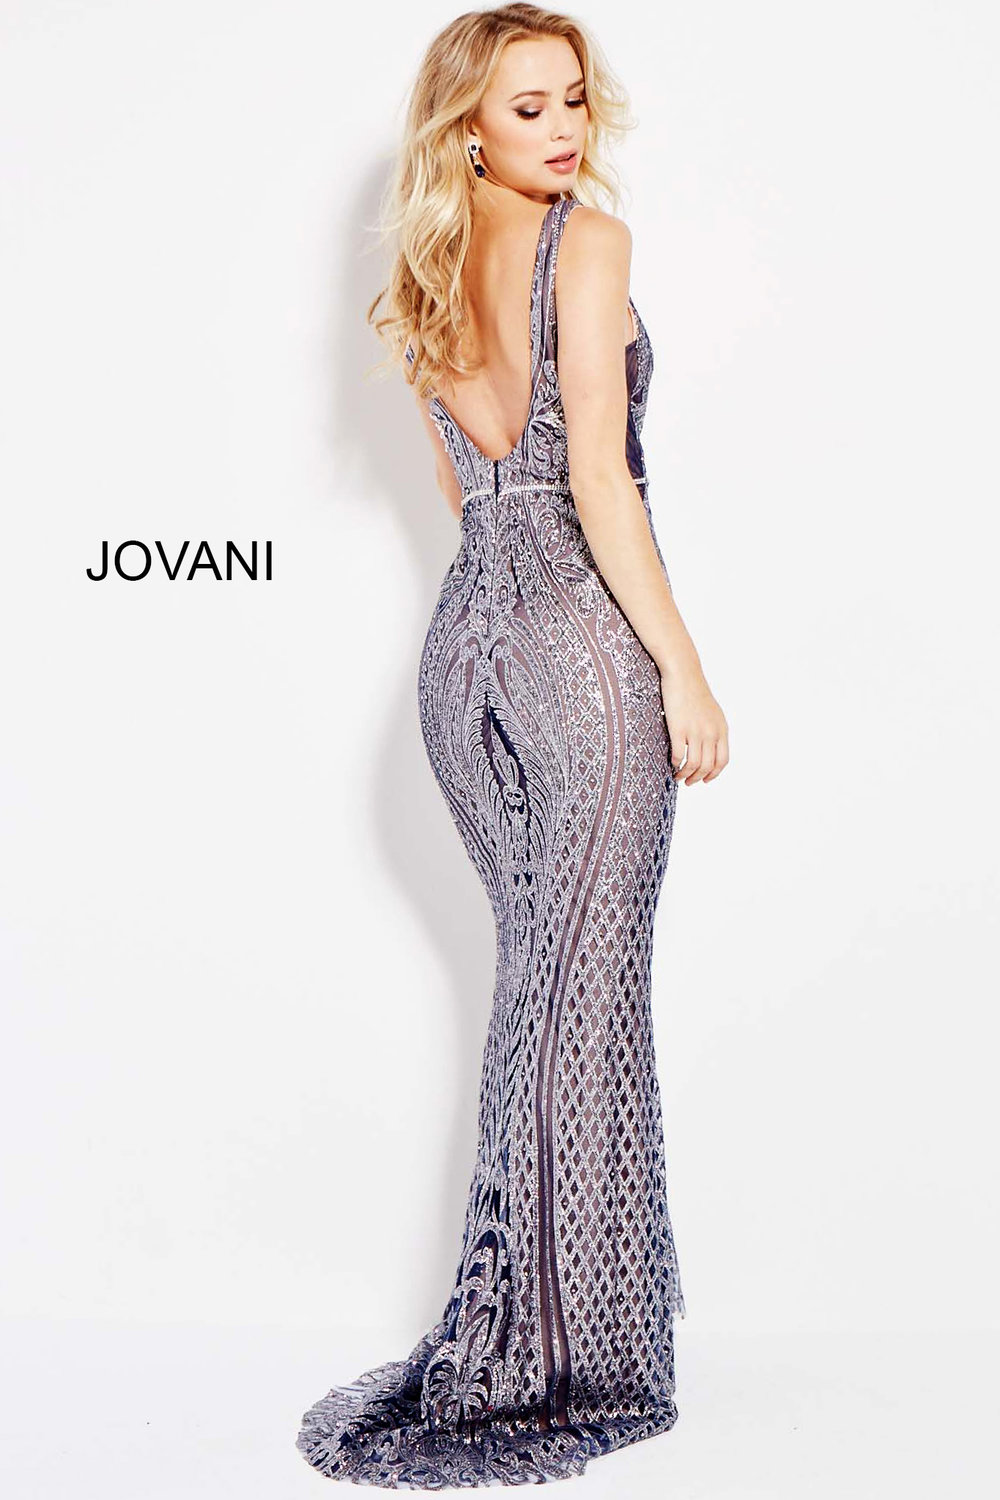 Low Back Fitted Lace Jeweled Dress